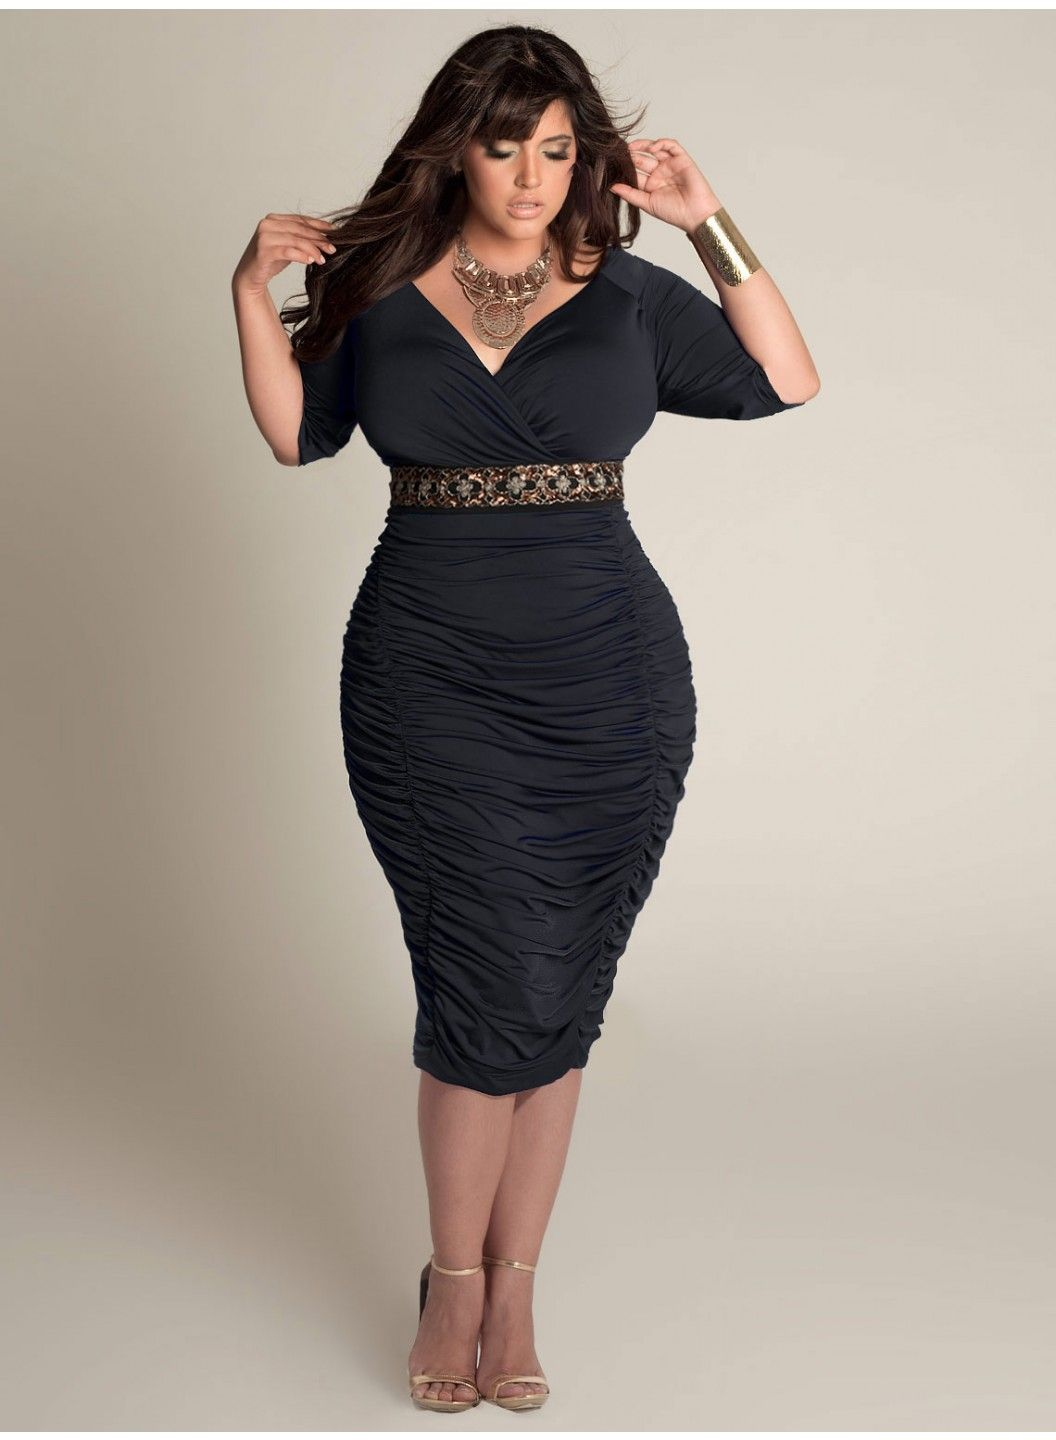 8d58a7f5d30 Plus Size Semi-Formal and Formal Outfit Ideas